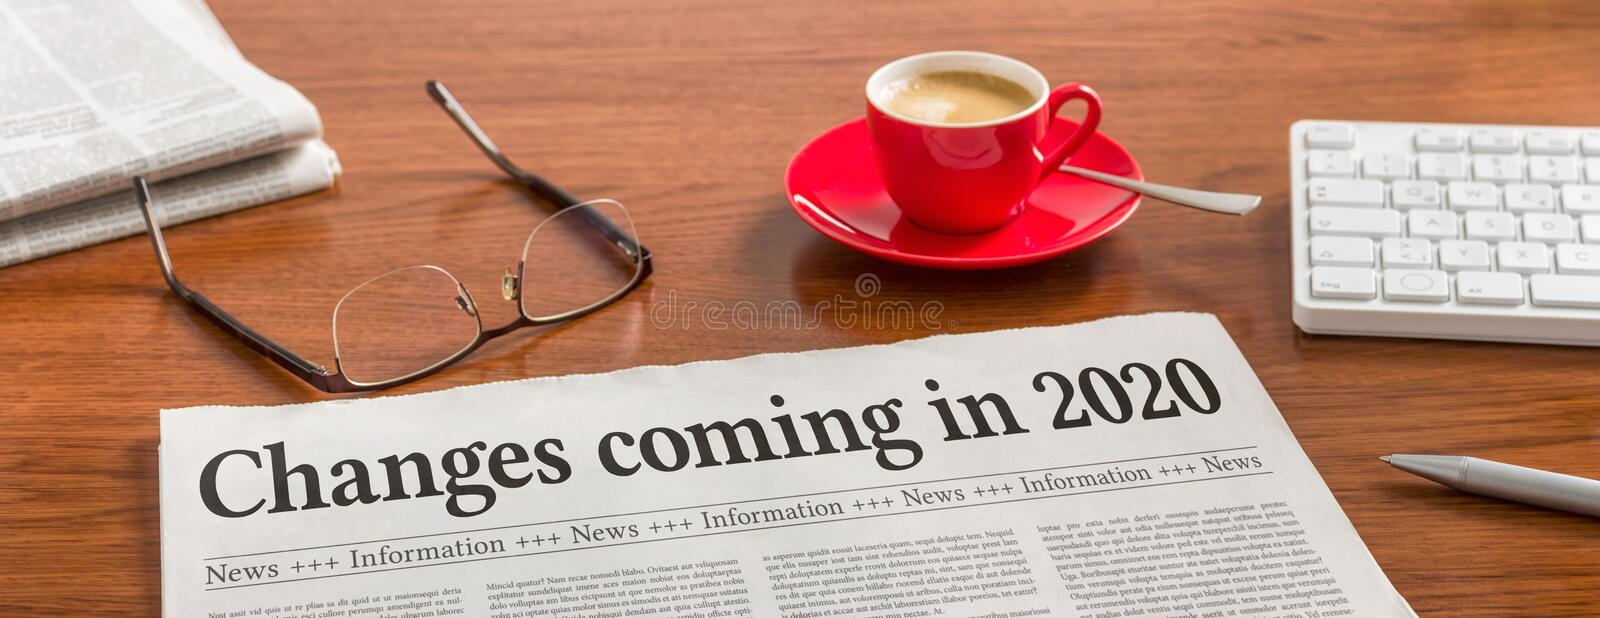 A newspaper on a wooden desk - Changes coming in 2020 stock photography